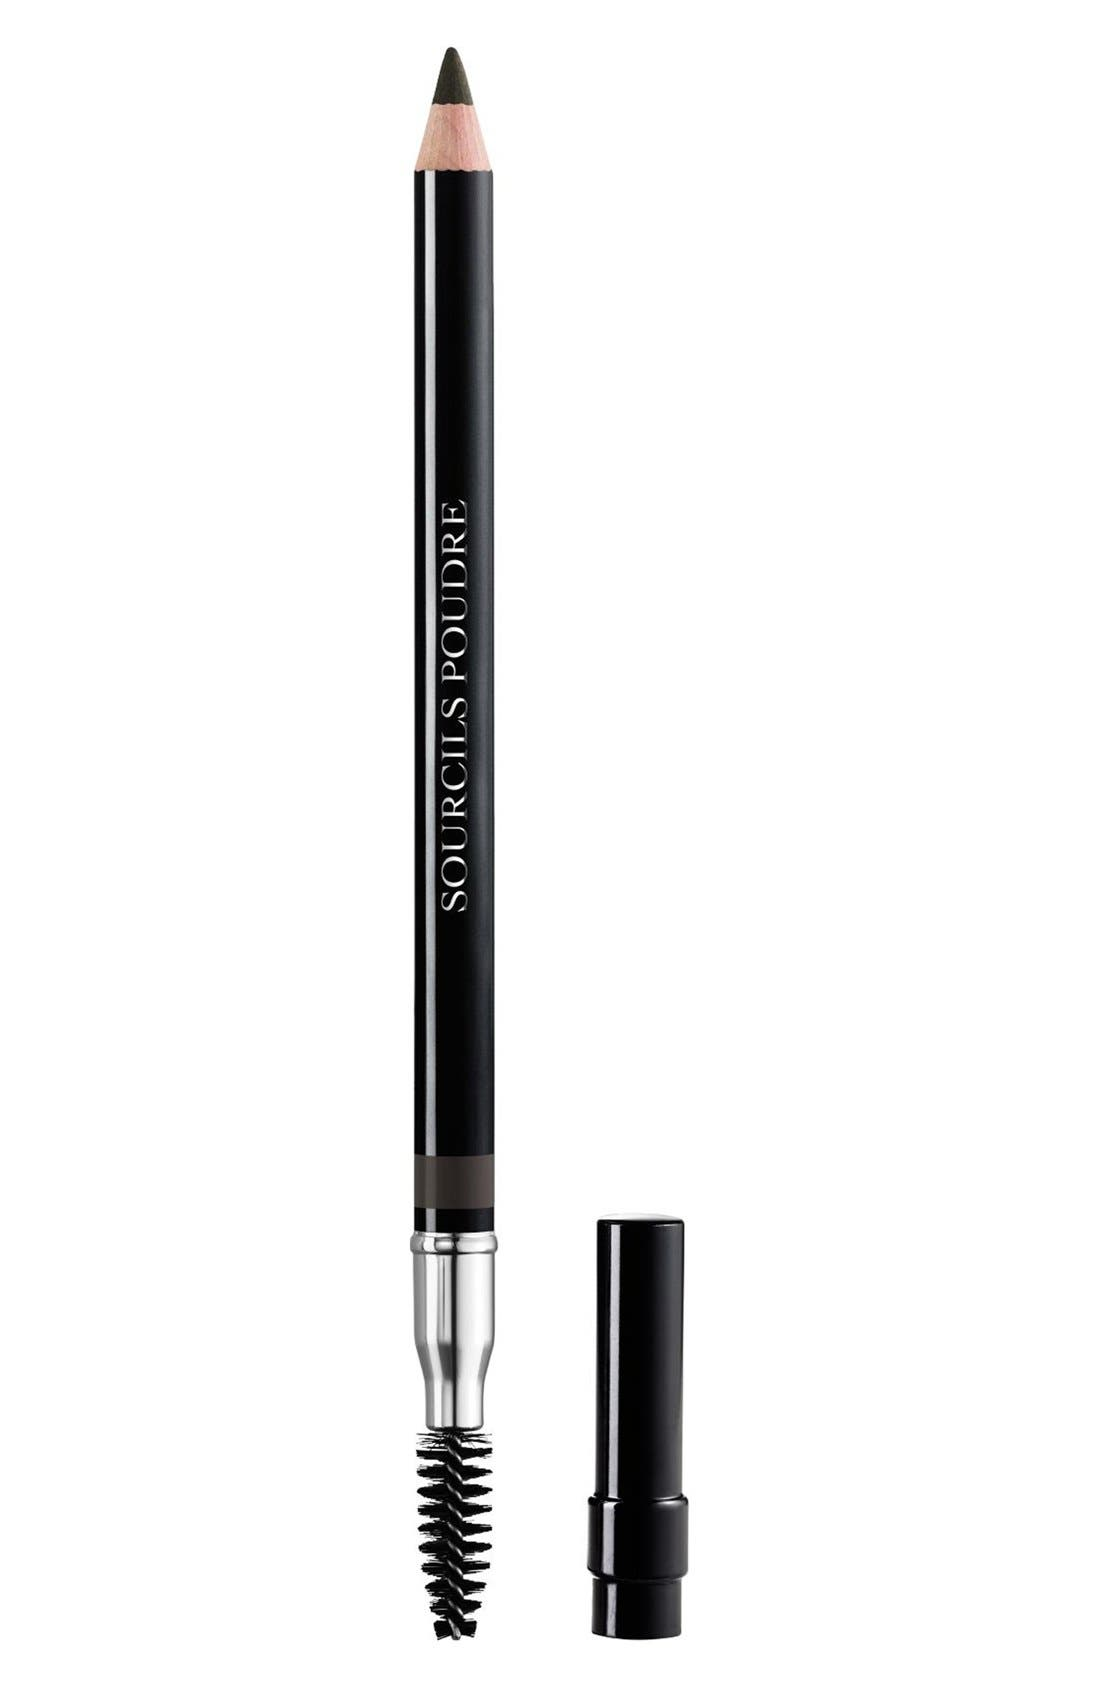 Sourcils Poudre Powder Eyebrow Pencil,                             Main thumbnail 1, color,                             093 BLACK